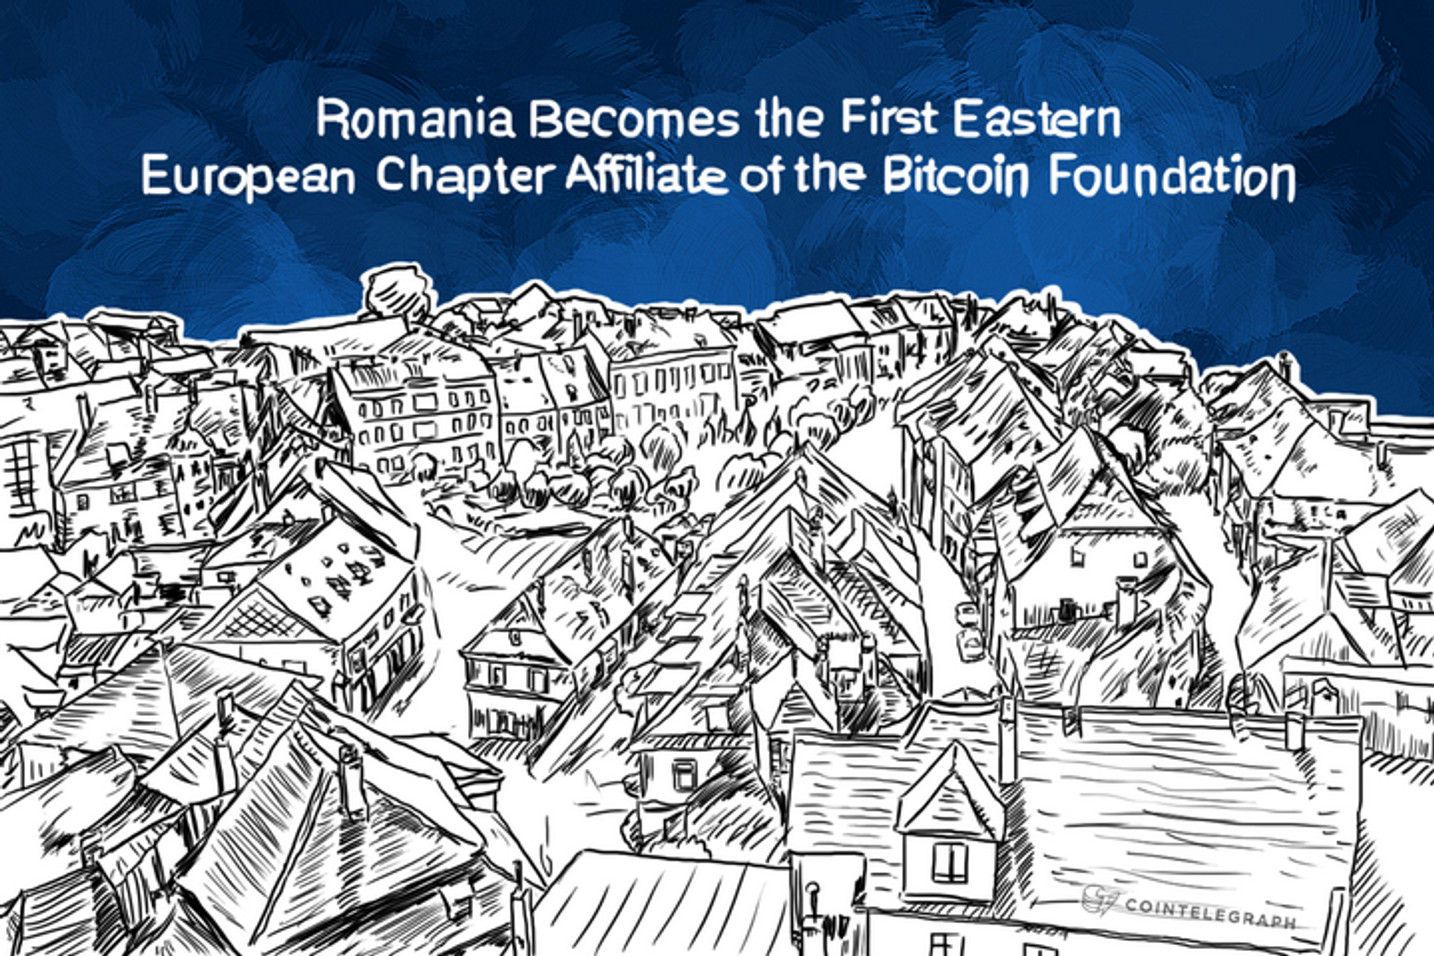 Romania Becomes the First Eastern European Chapter Affiliate of the Bitcoin Foundation